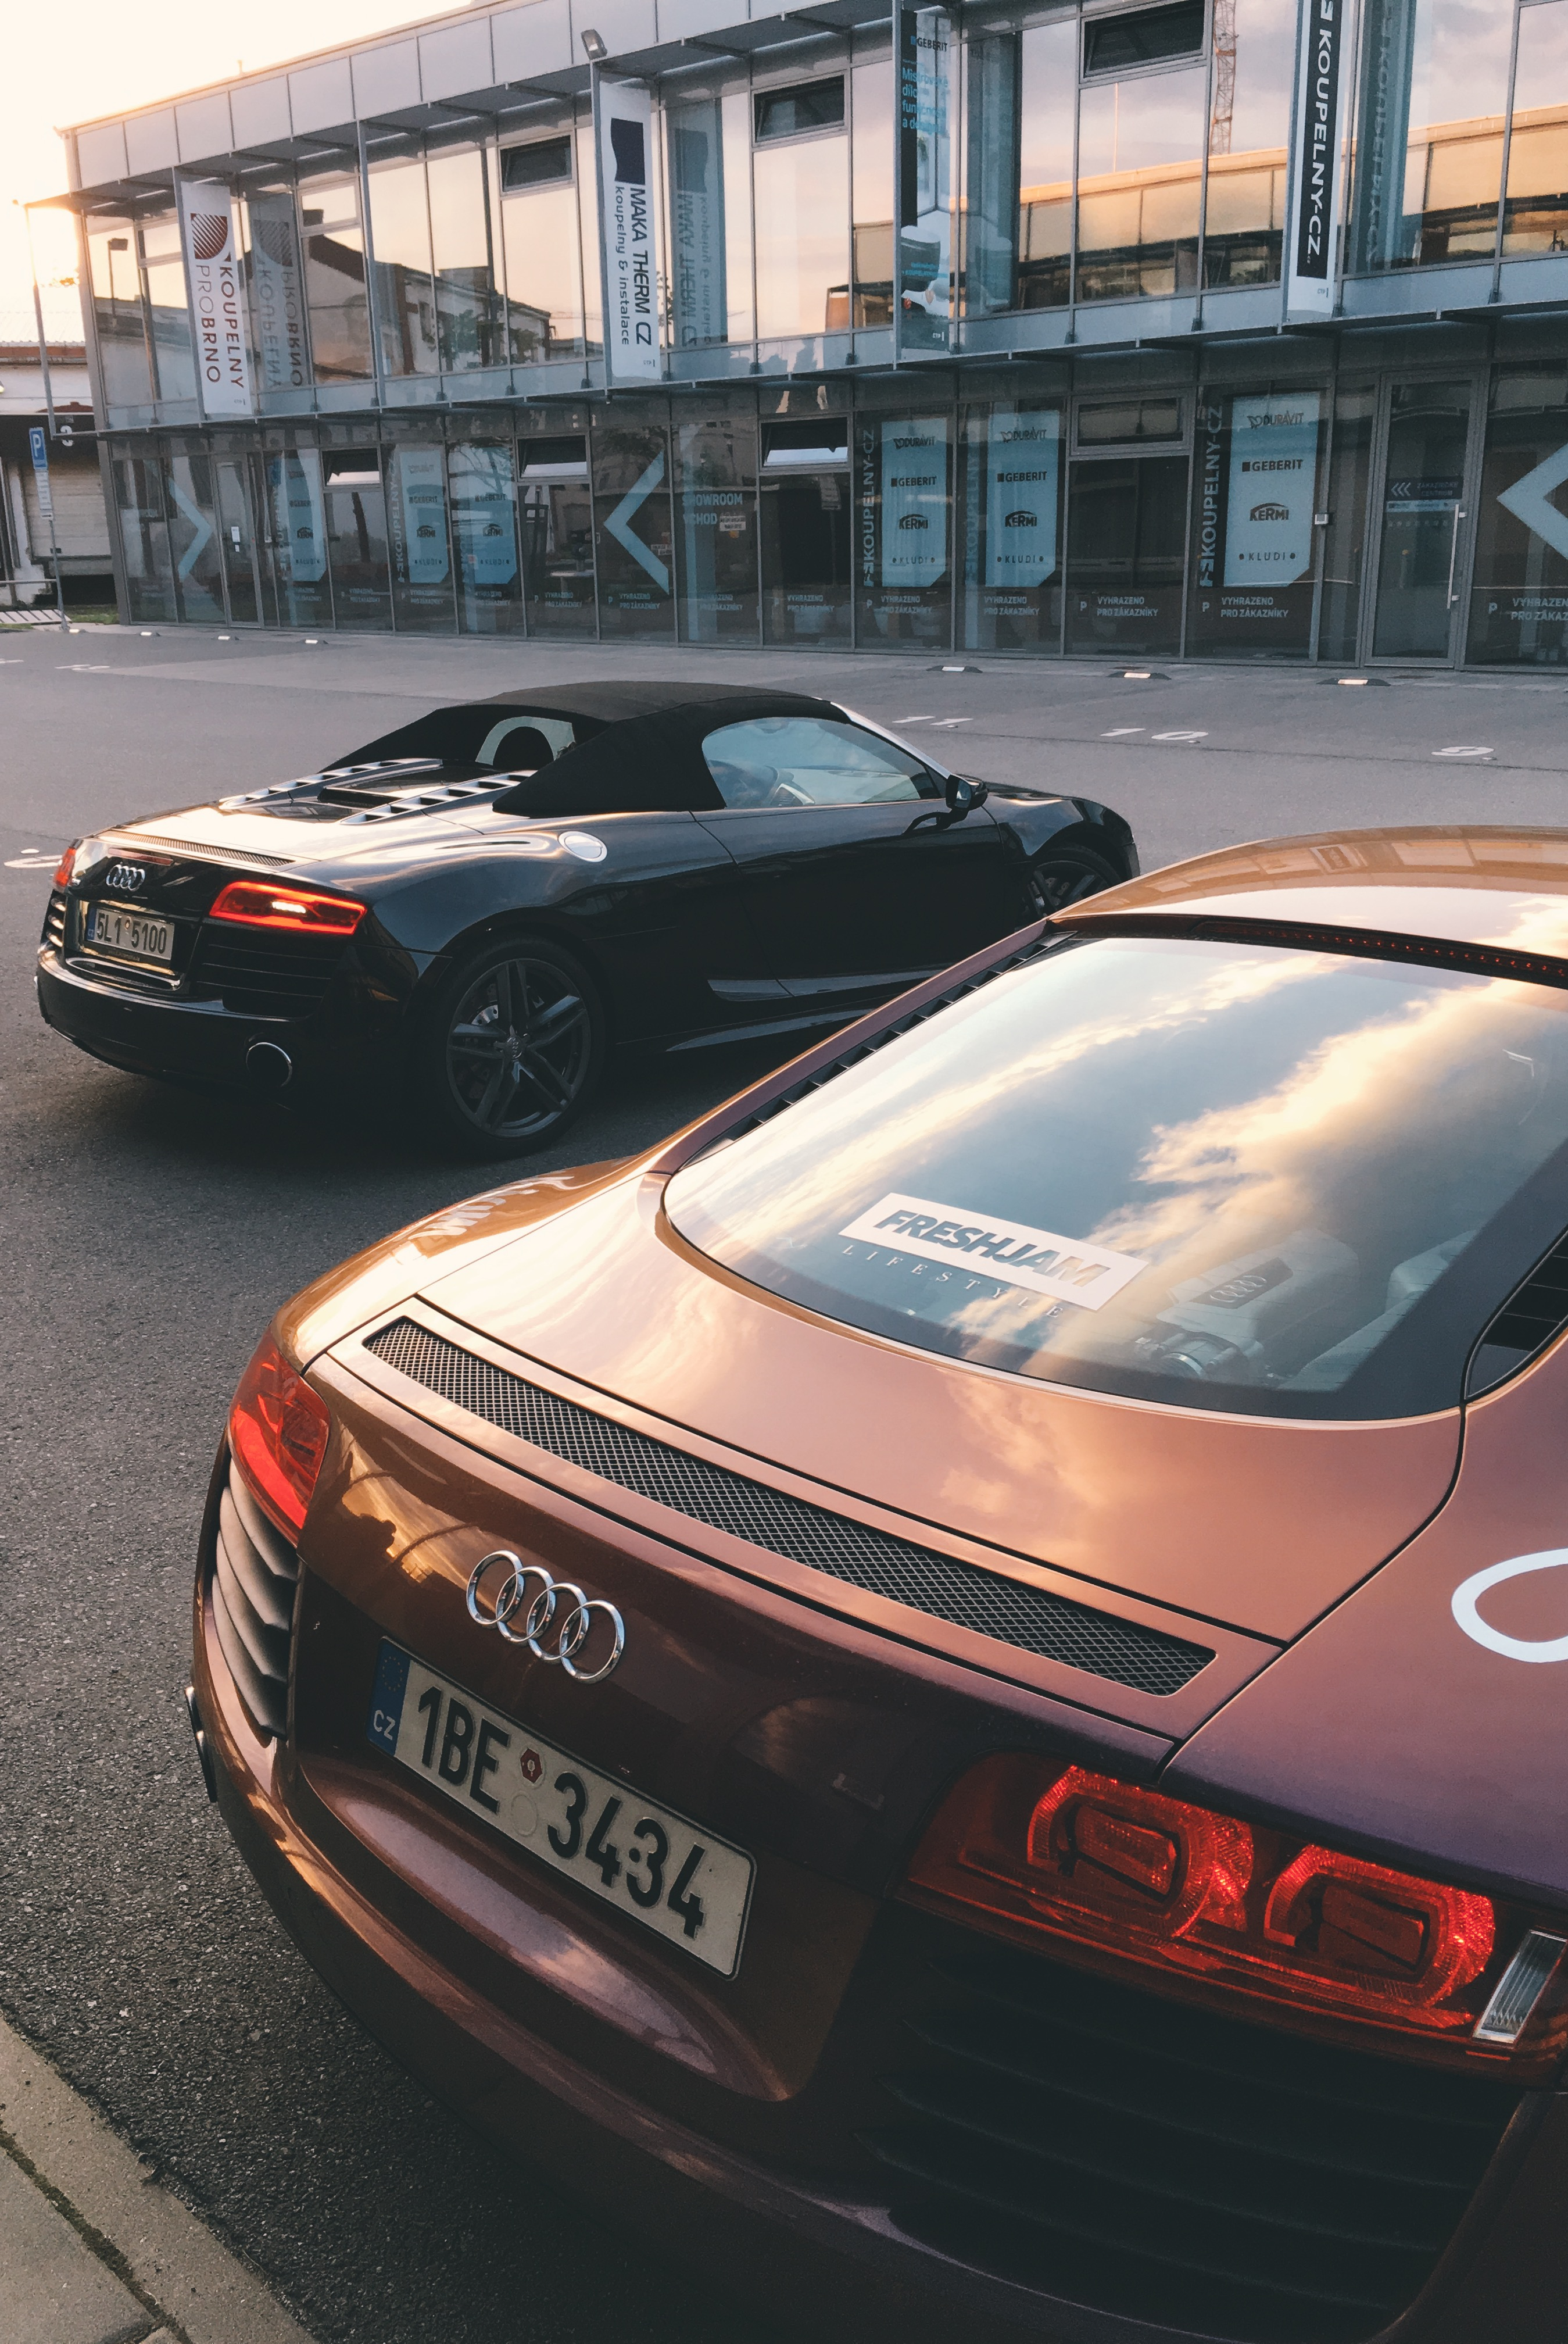 Double R8 Sunset